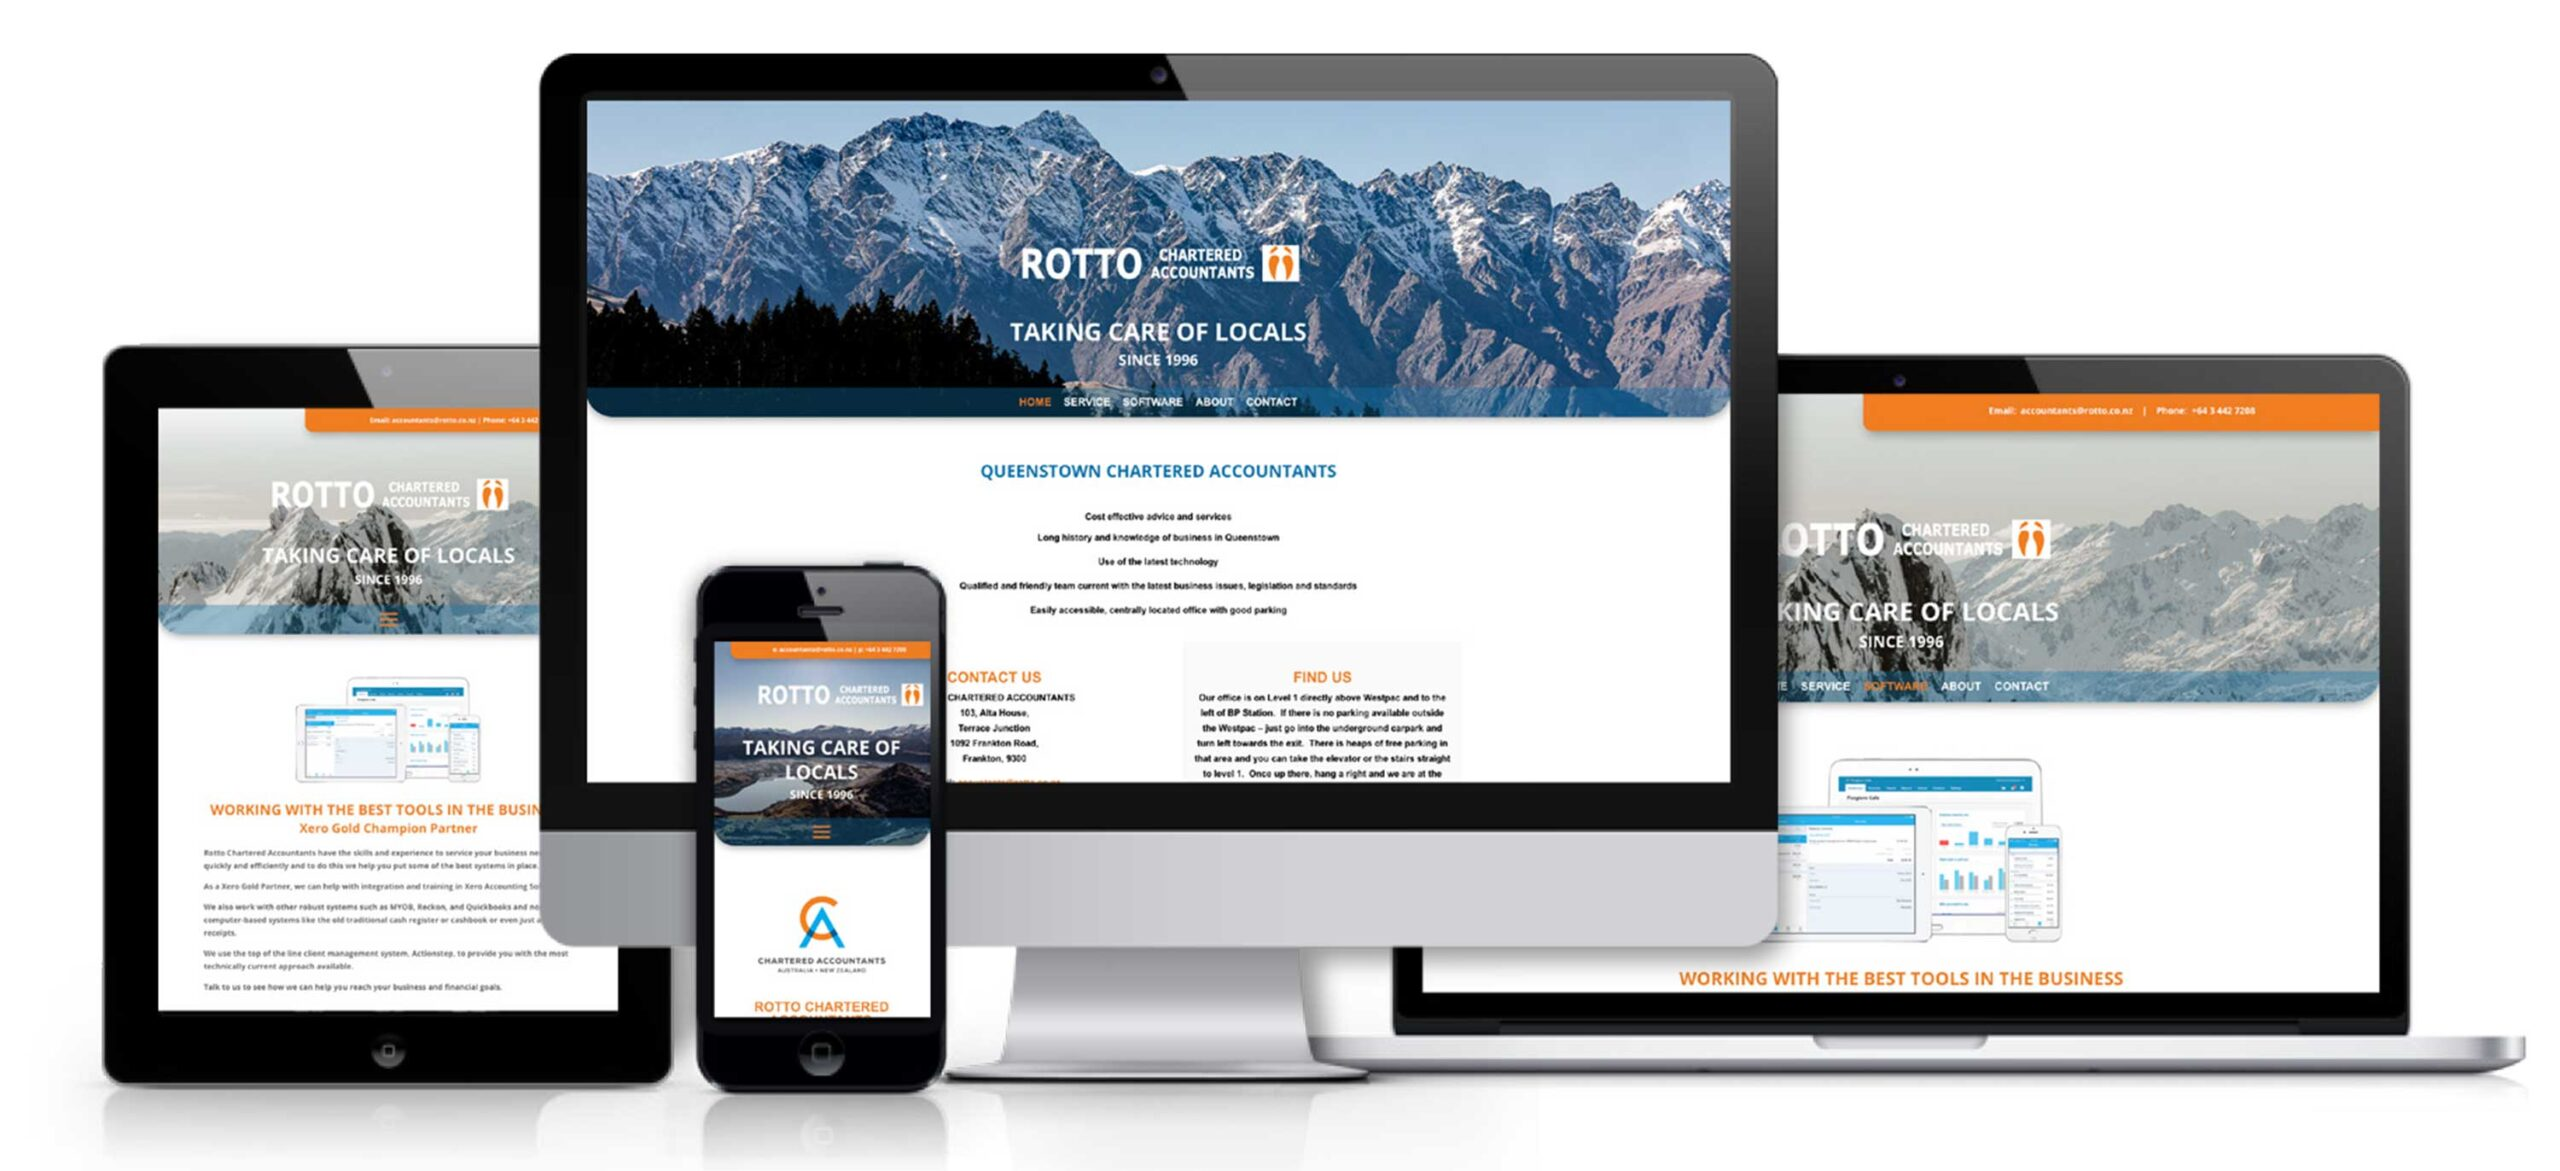 Rotto Chartered Accountants Website